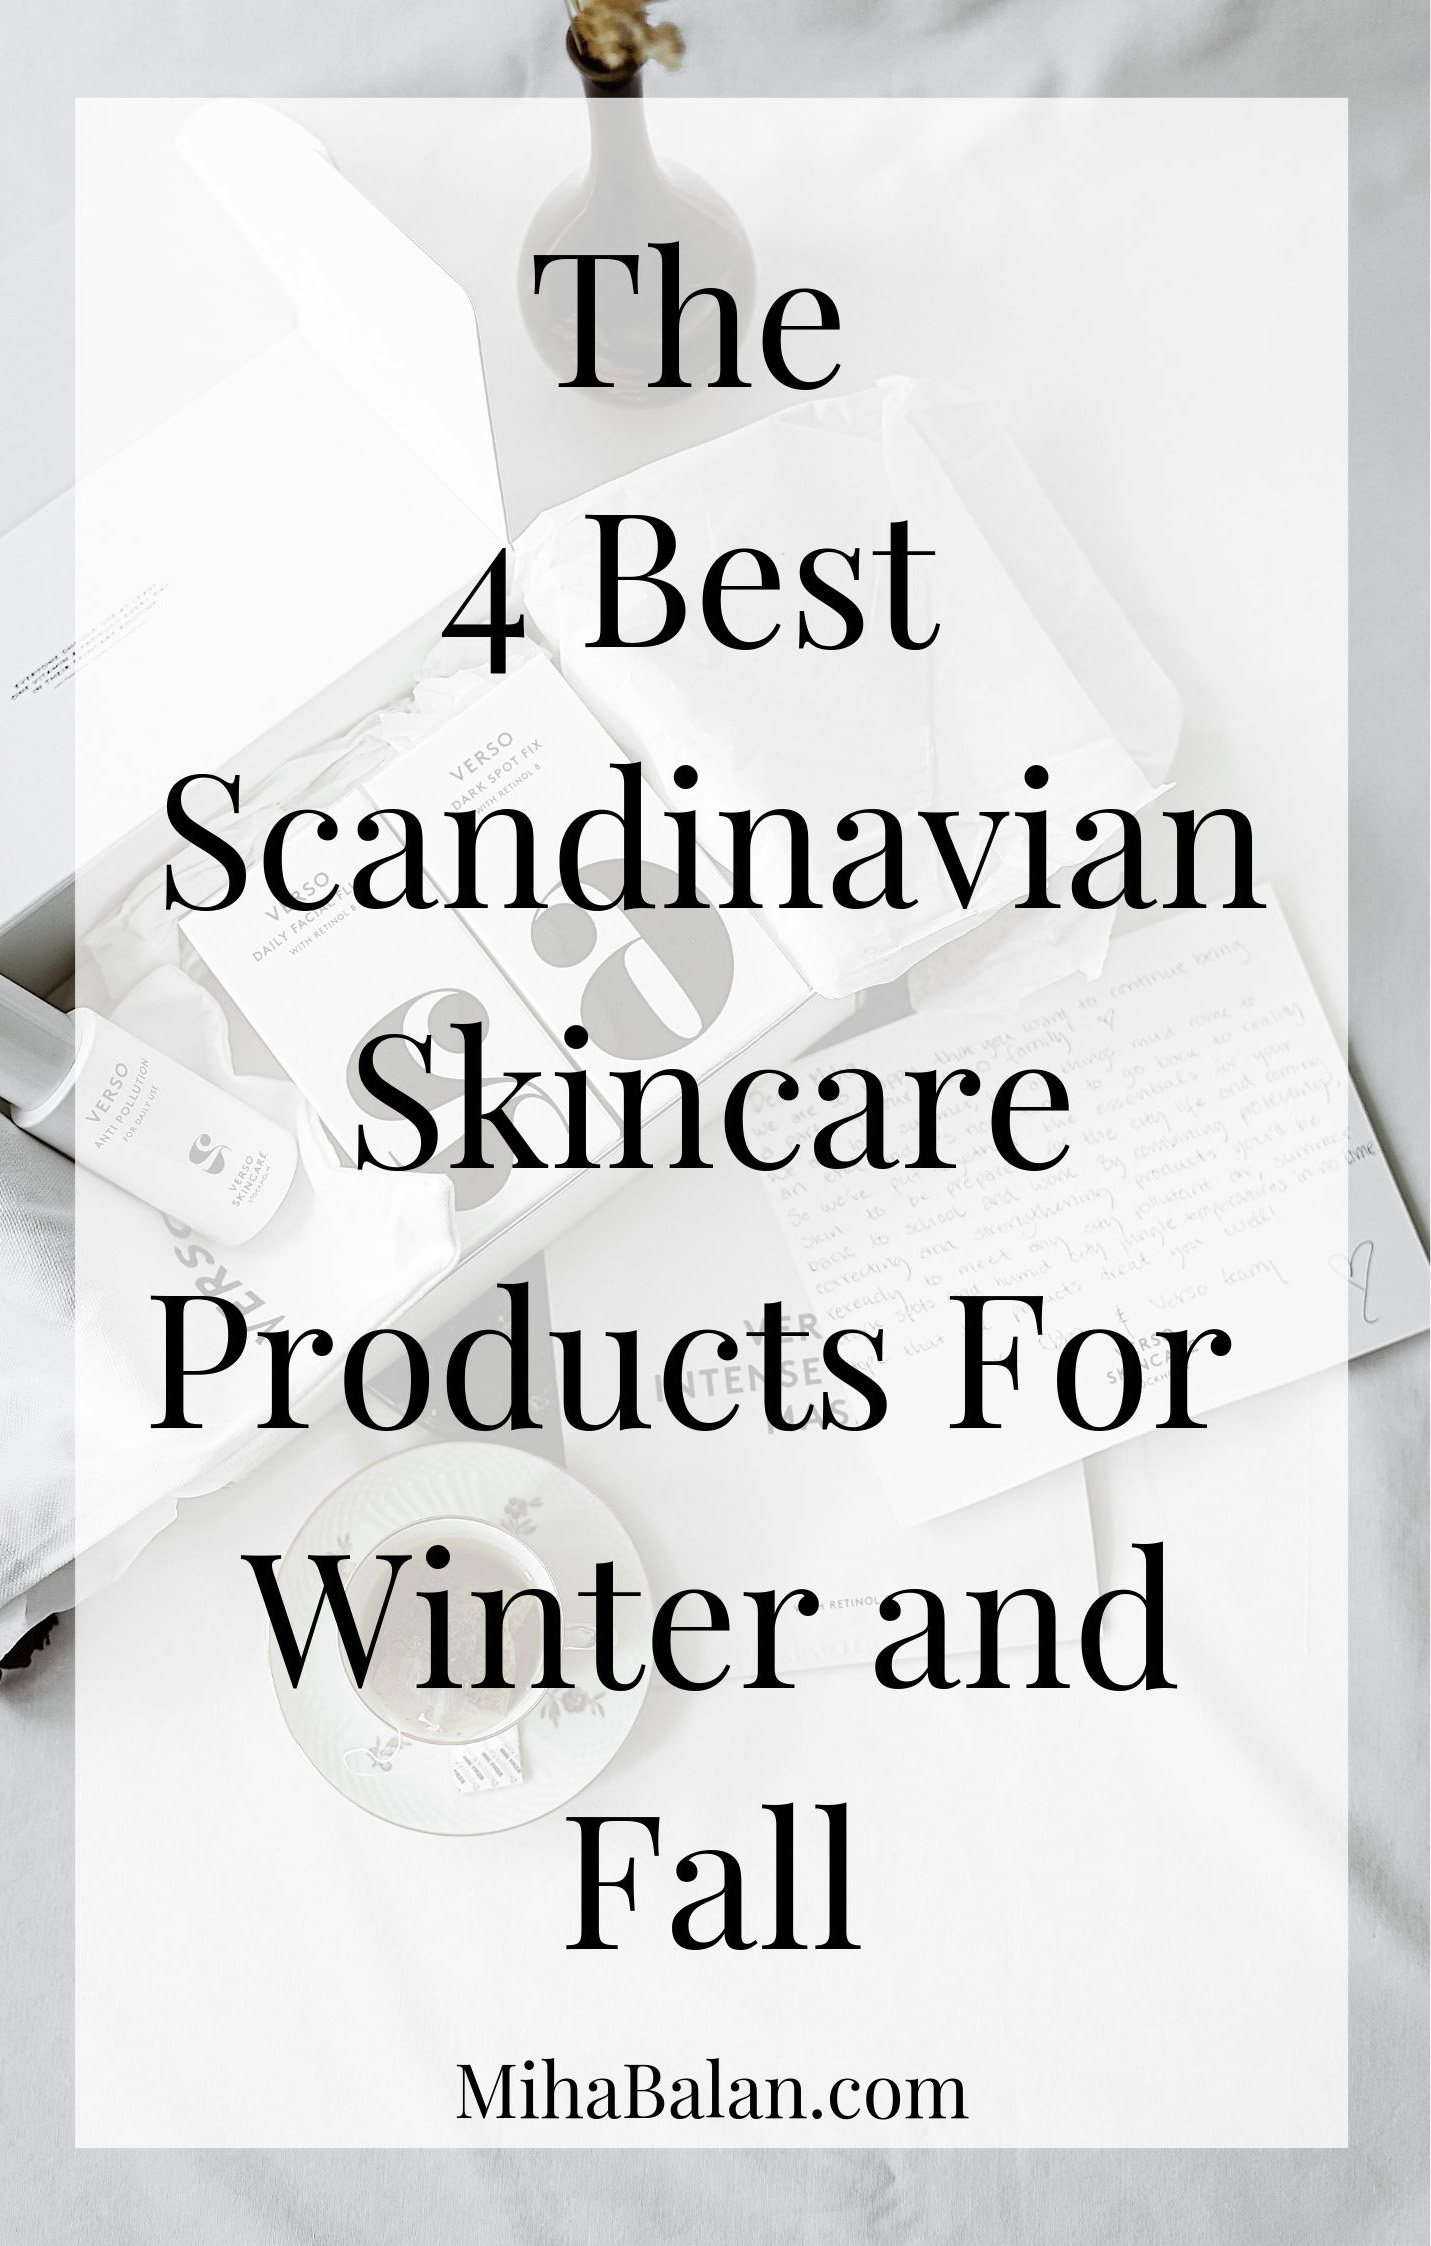 The-4-Best-Scandinavian-Skincare-Products-For-Winter-and-Fall-skincare-tips-for-women-in-their-30s